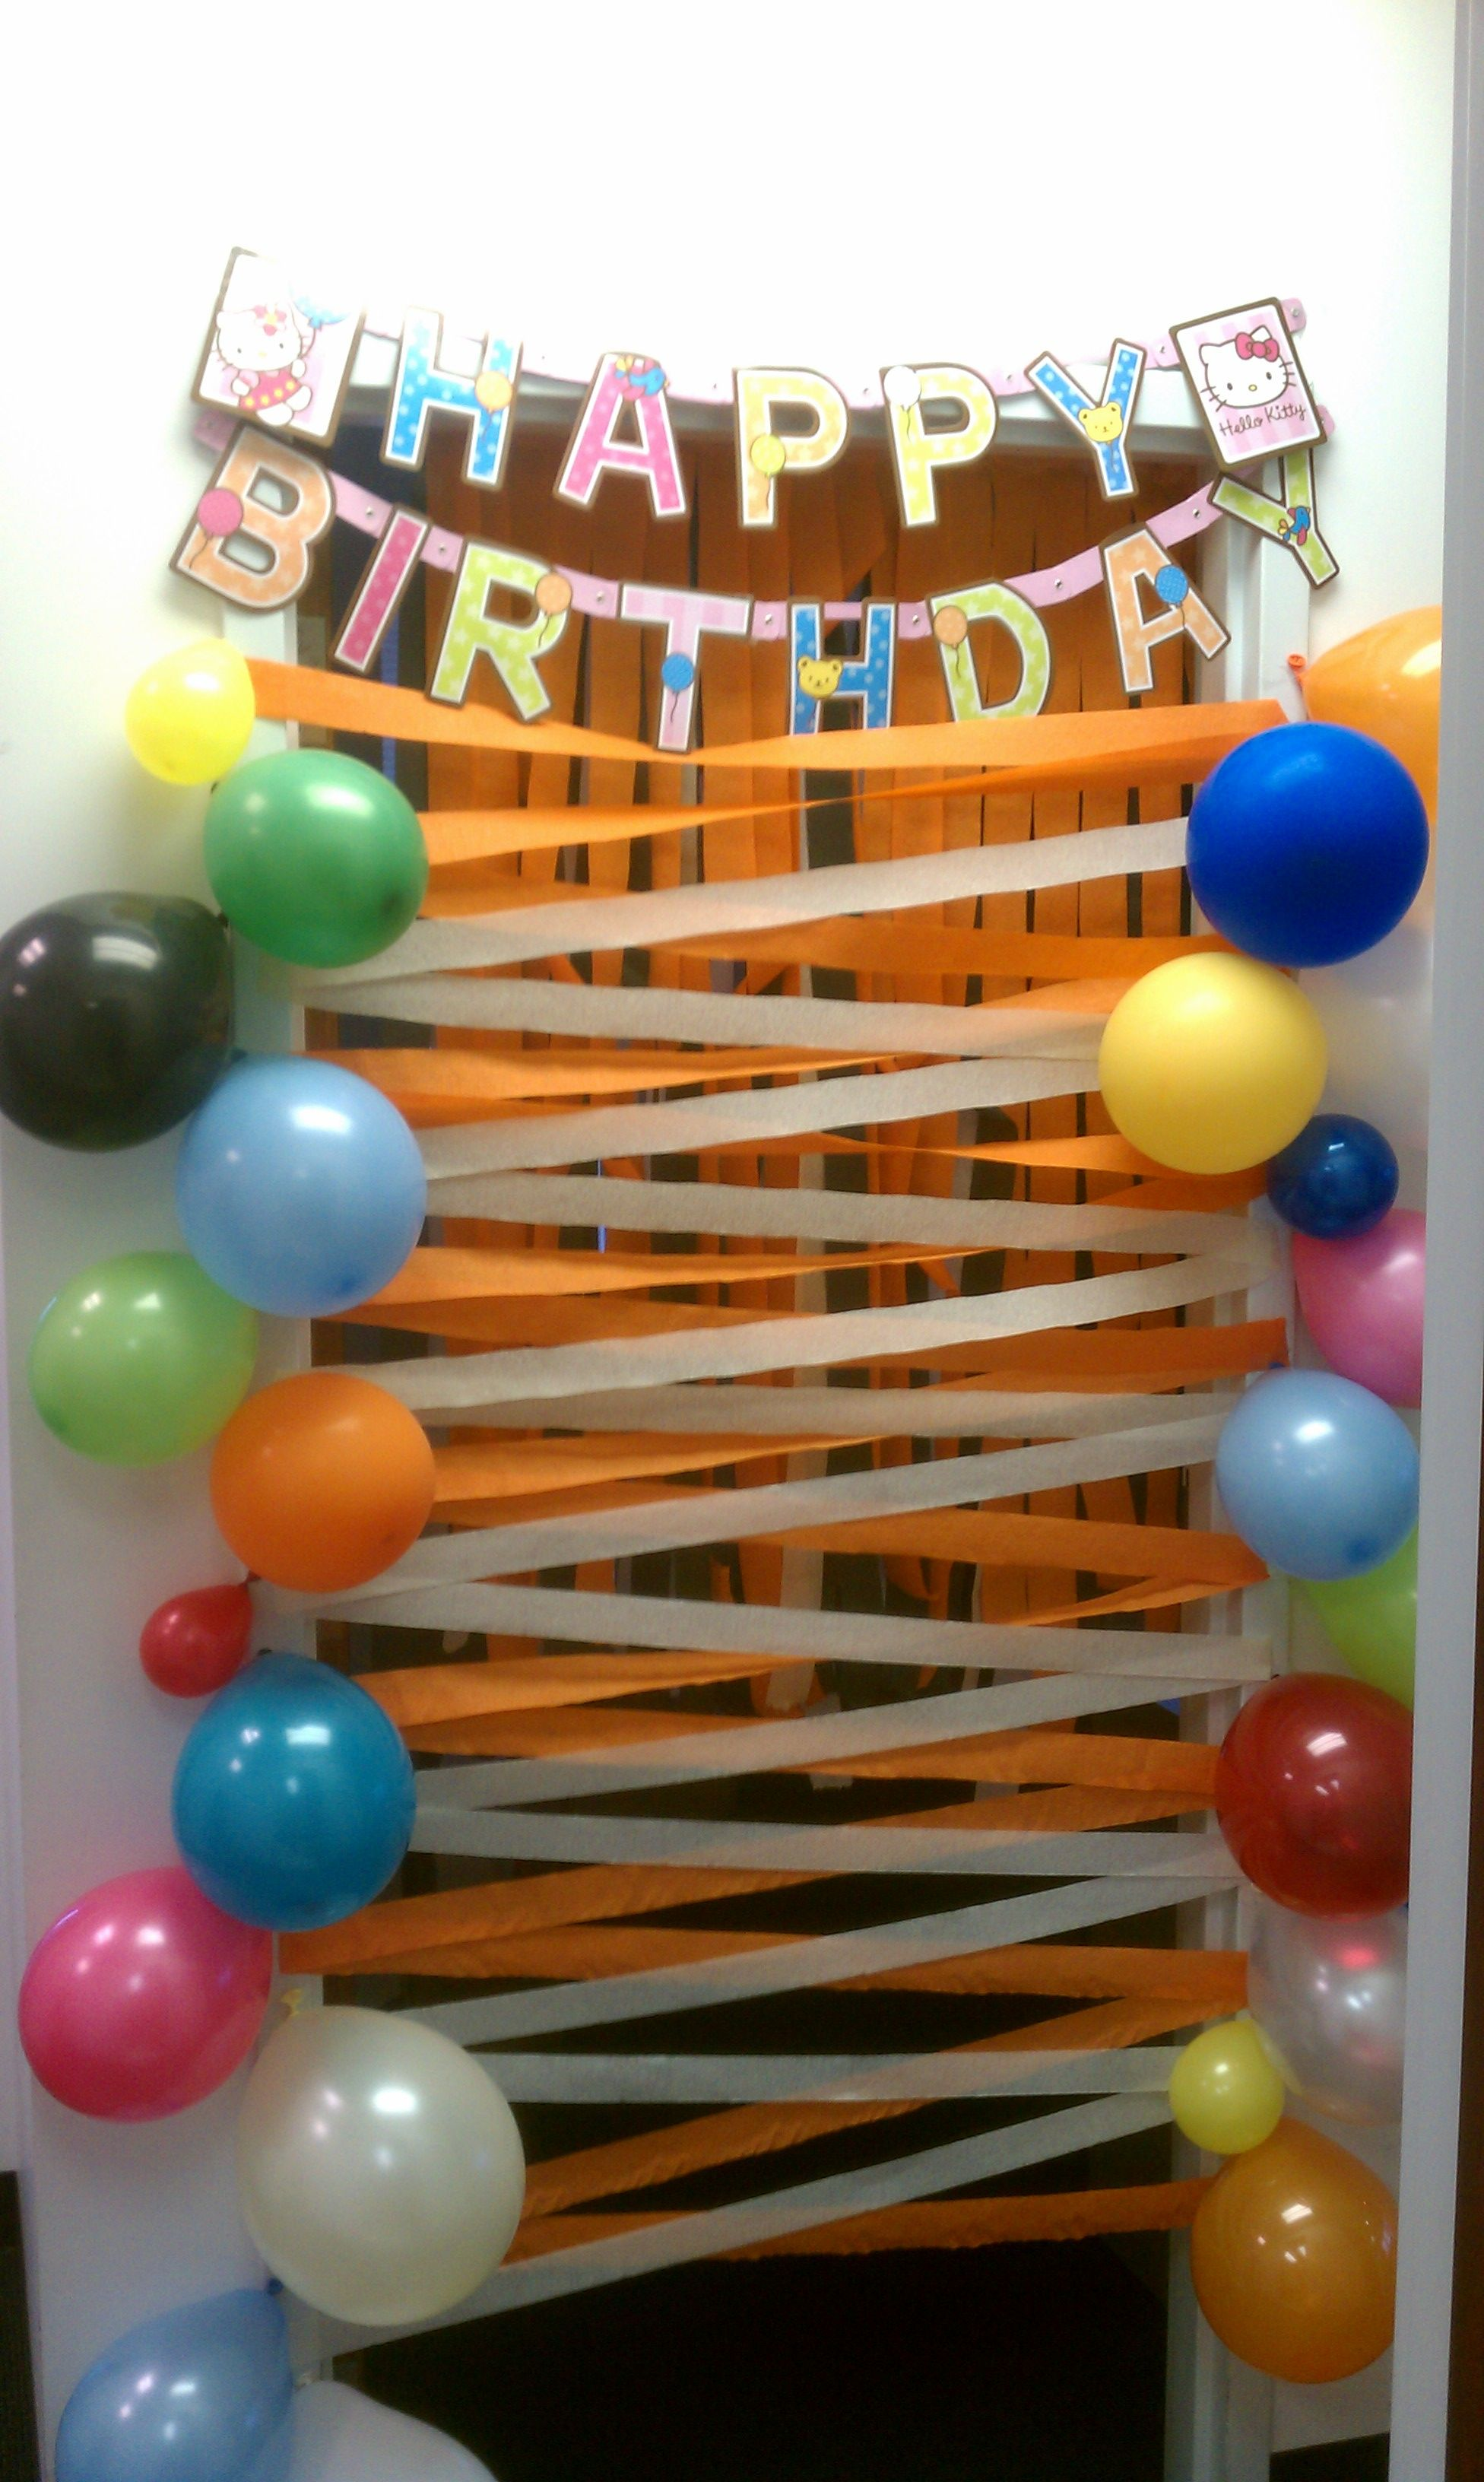 A Nice Birthday Surprise For My Coworker Door Decorations Morning